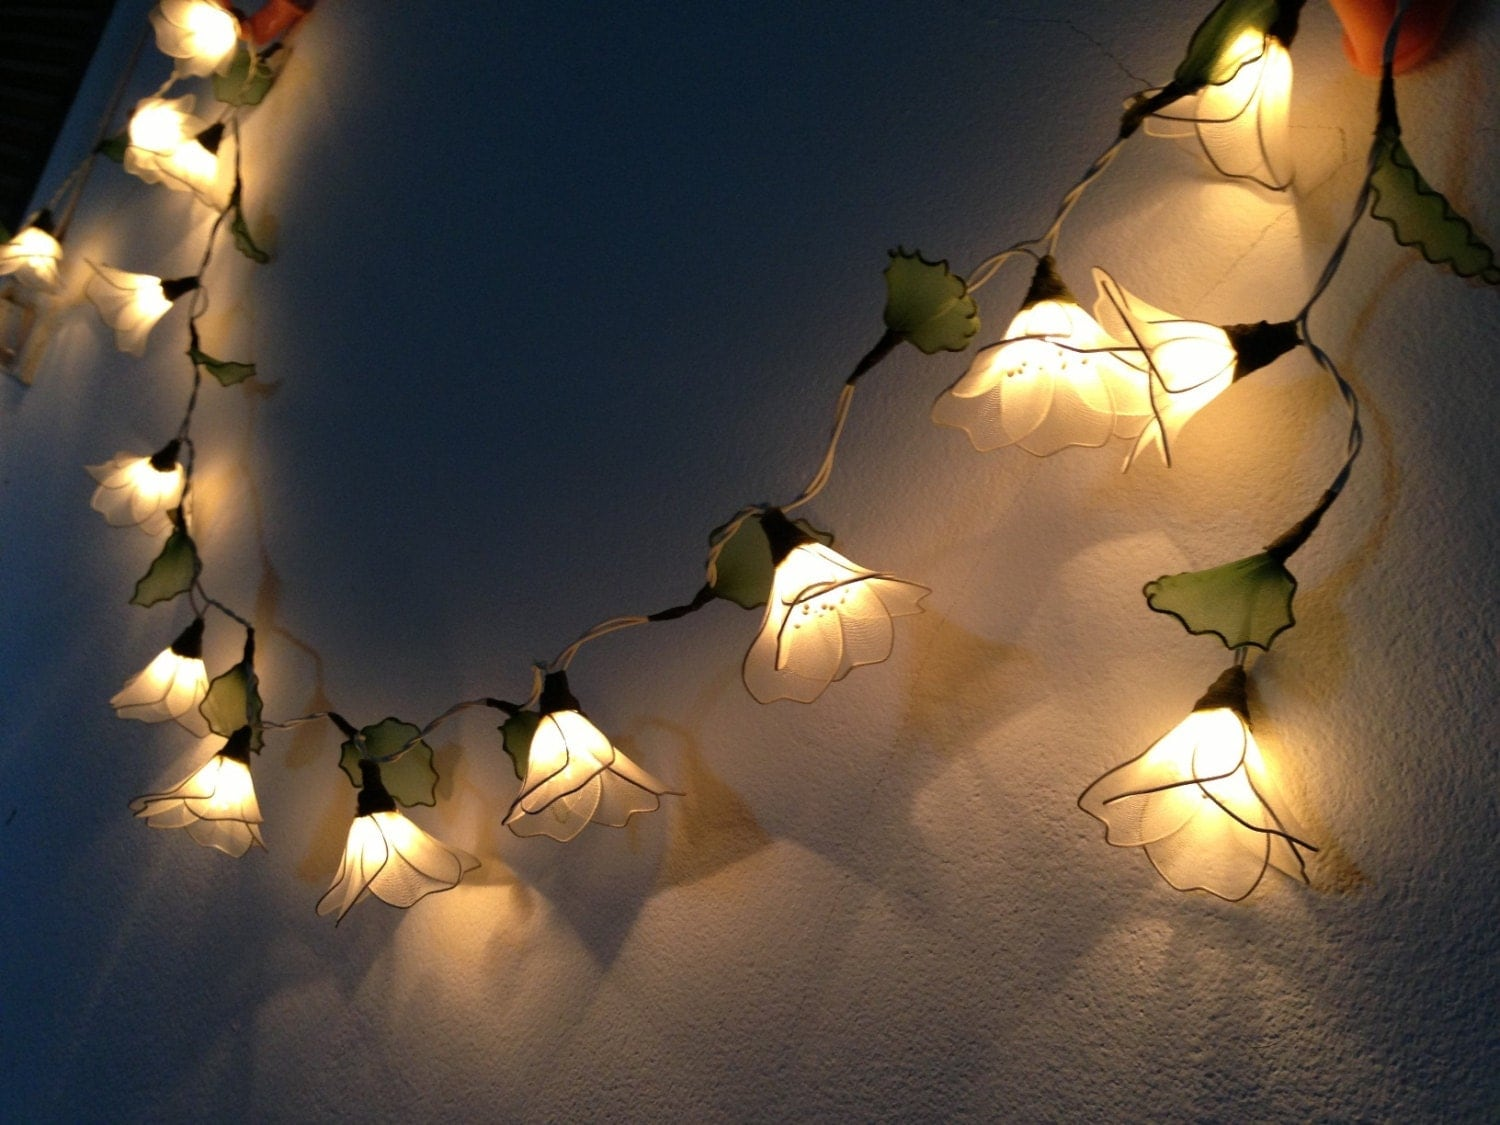 20 bulbs white himalayas flower with leaf string lights for - Decorative garden lights ...